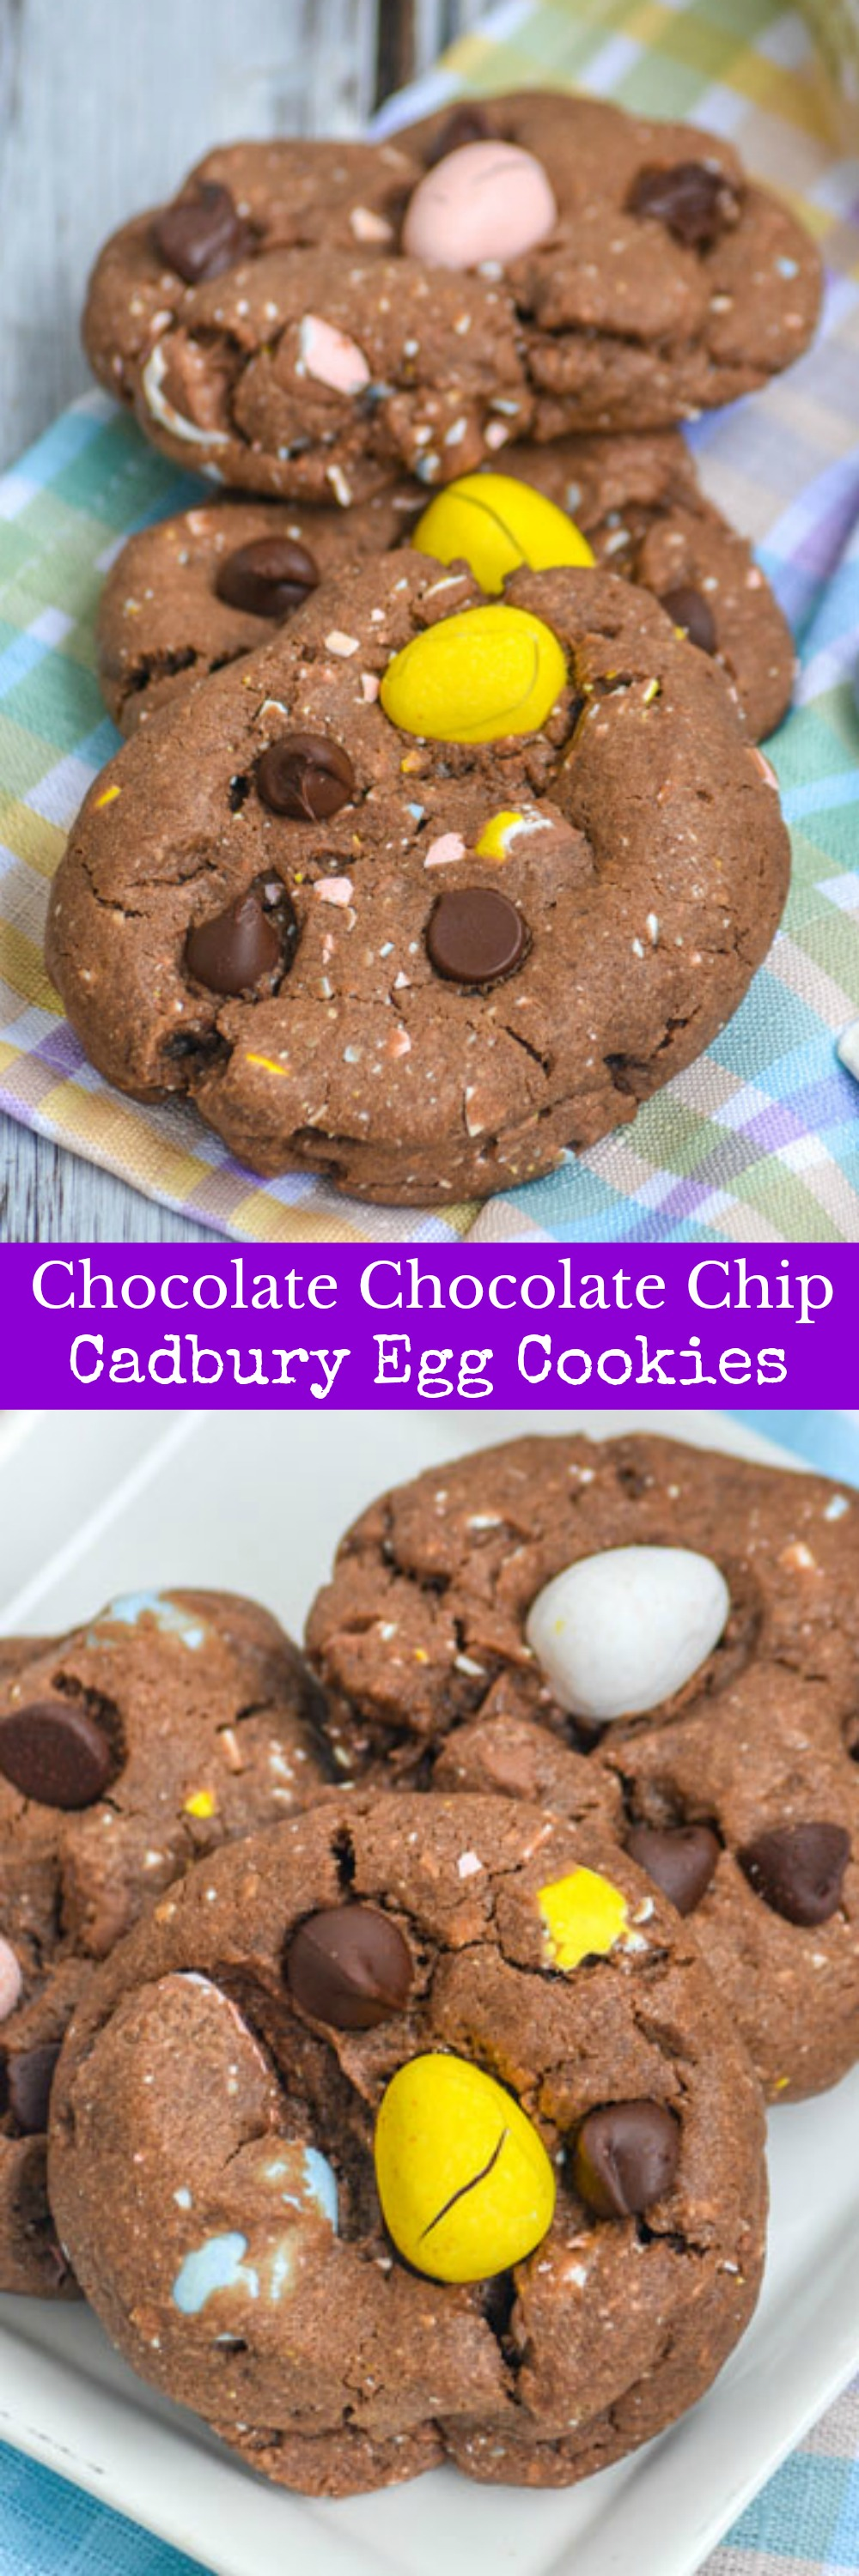 Chocolate Chocolate Chip Cadbury Egg Cookies are this Easter Bunny's favorite. Soft, fluffy, studded with chocolate chips & mini Cadbury eggs- these chocolate cookies are riddled with your favorite things. Load my basket up with a batch (or 2 or 3), and I'll happily hop along.